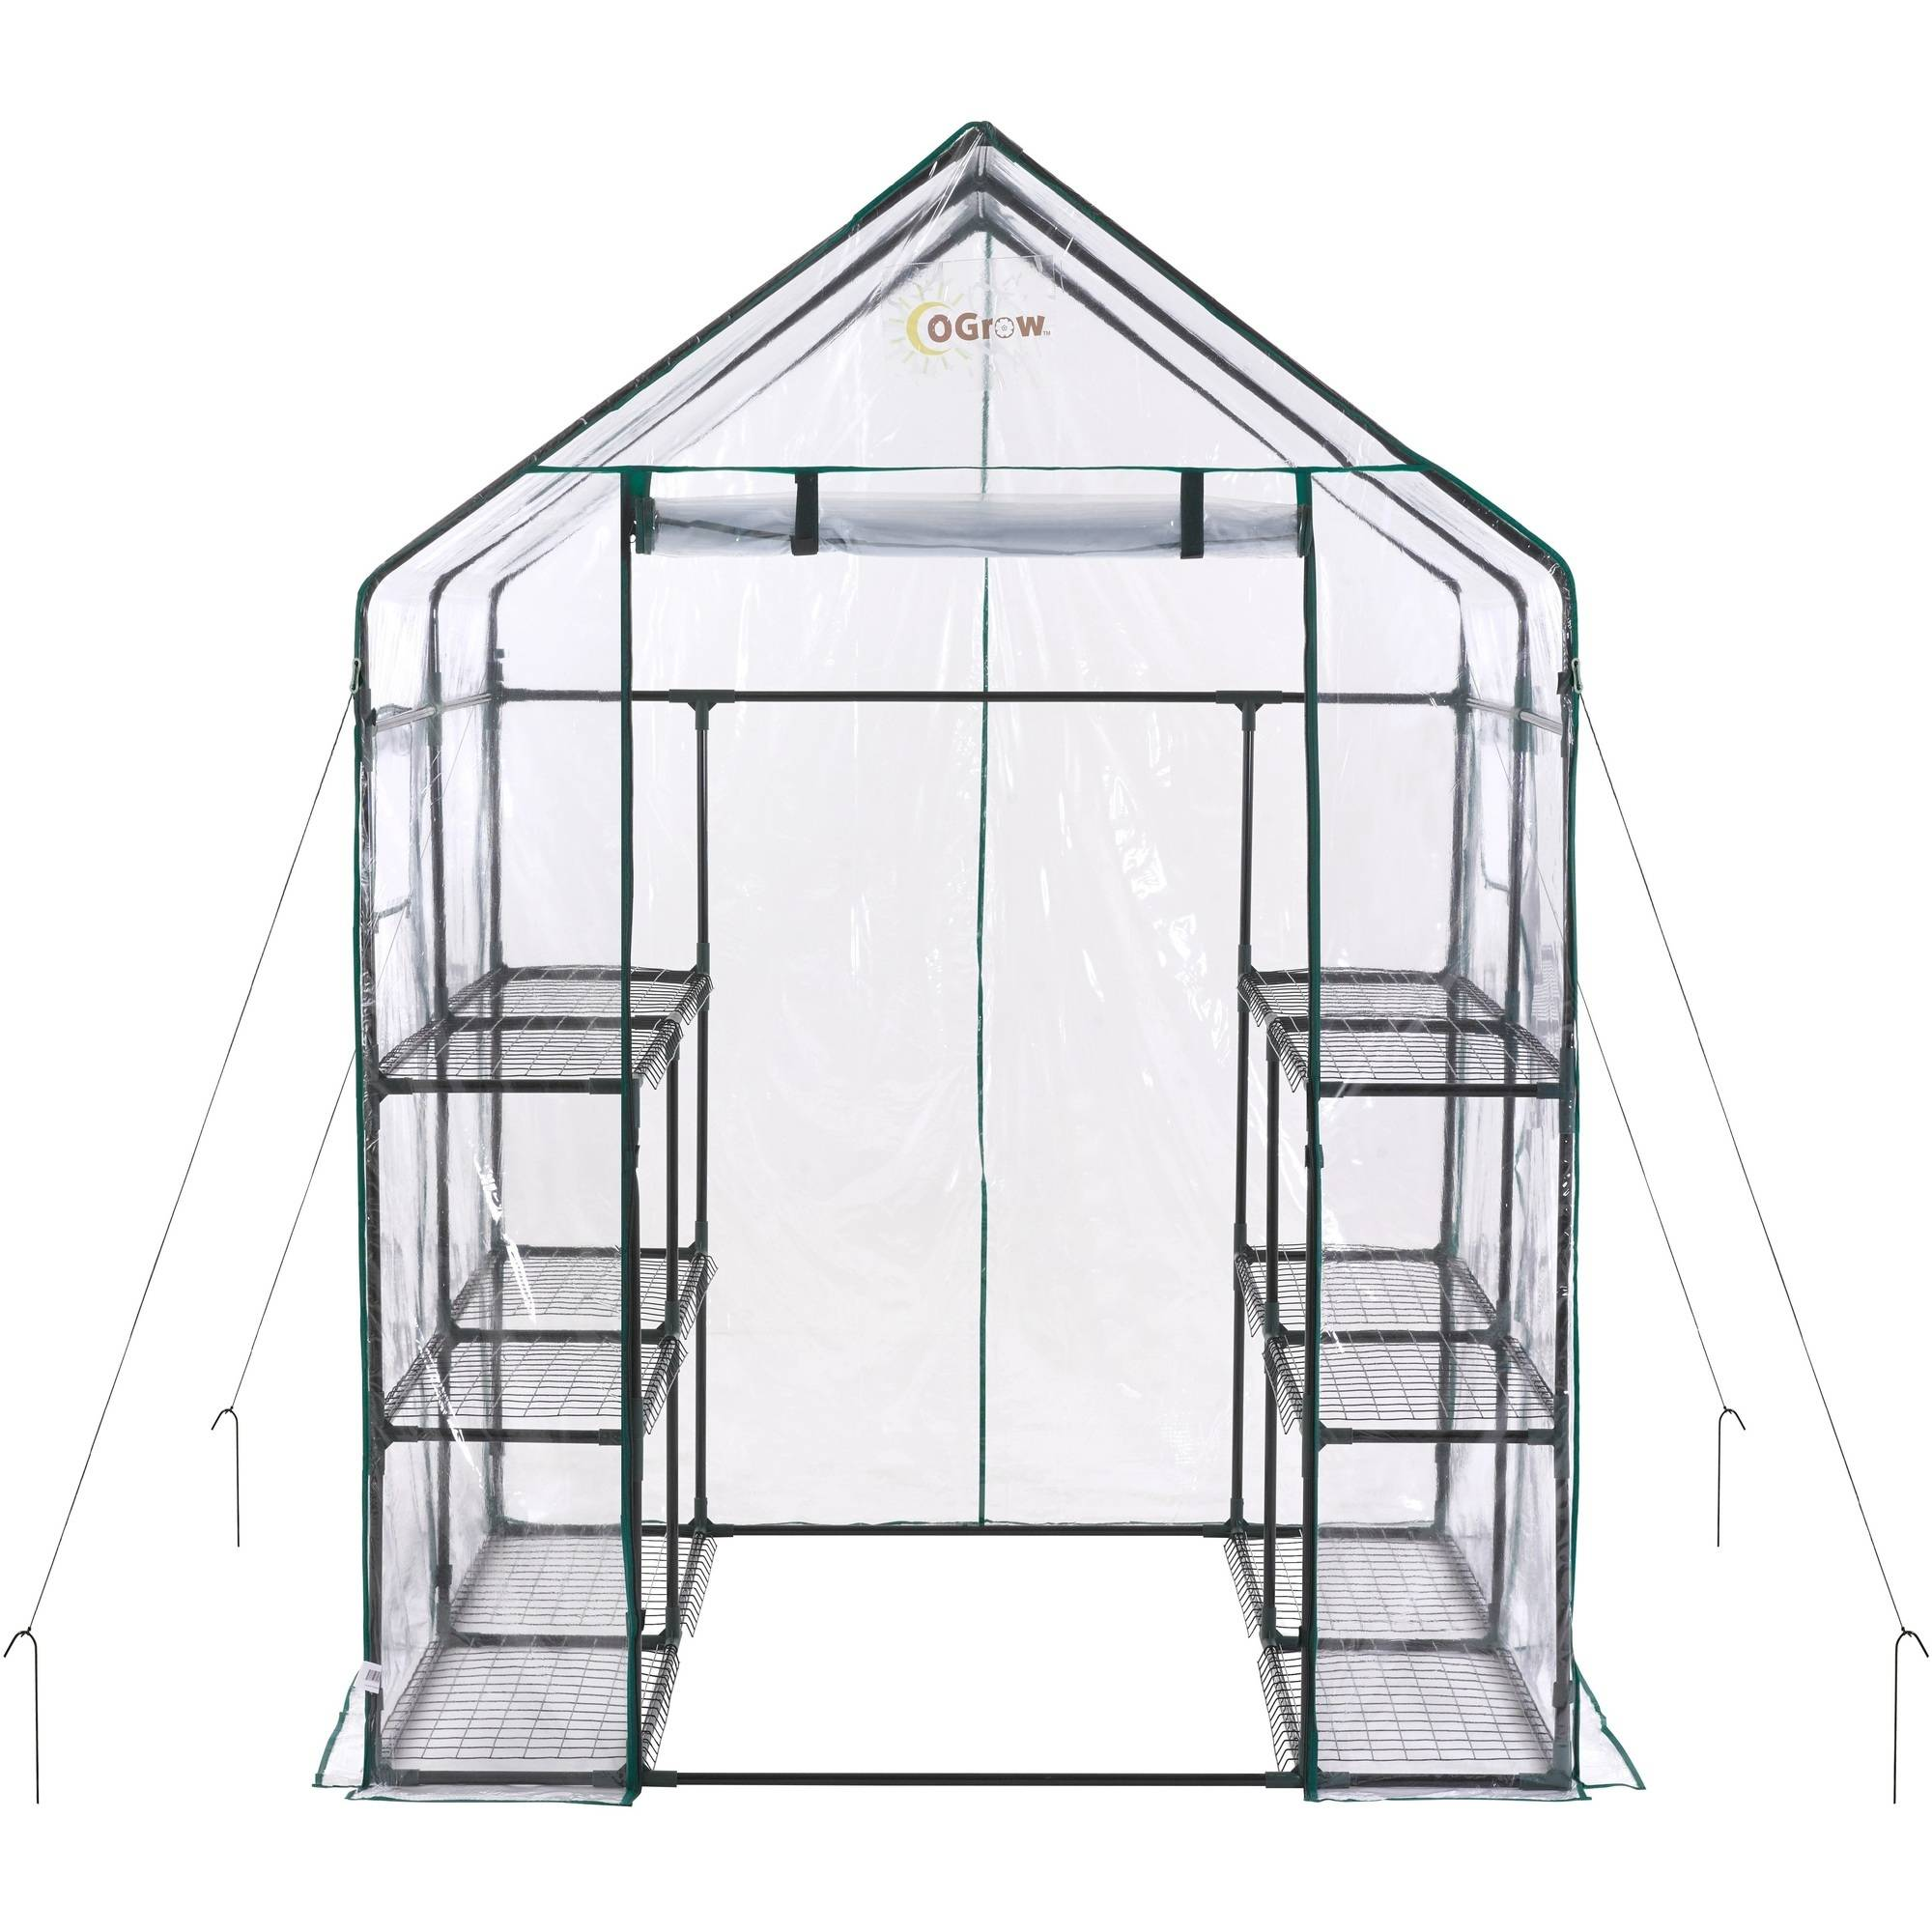 Product Image Ogrow Deluxe Mini Walk In 6 Tier 12 Shelf Portable Greenhouse